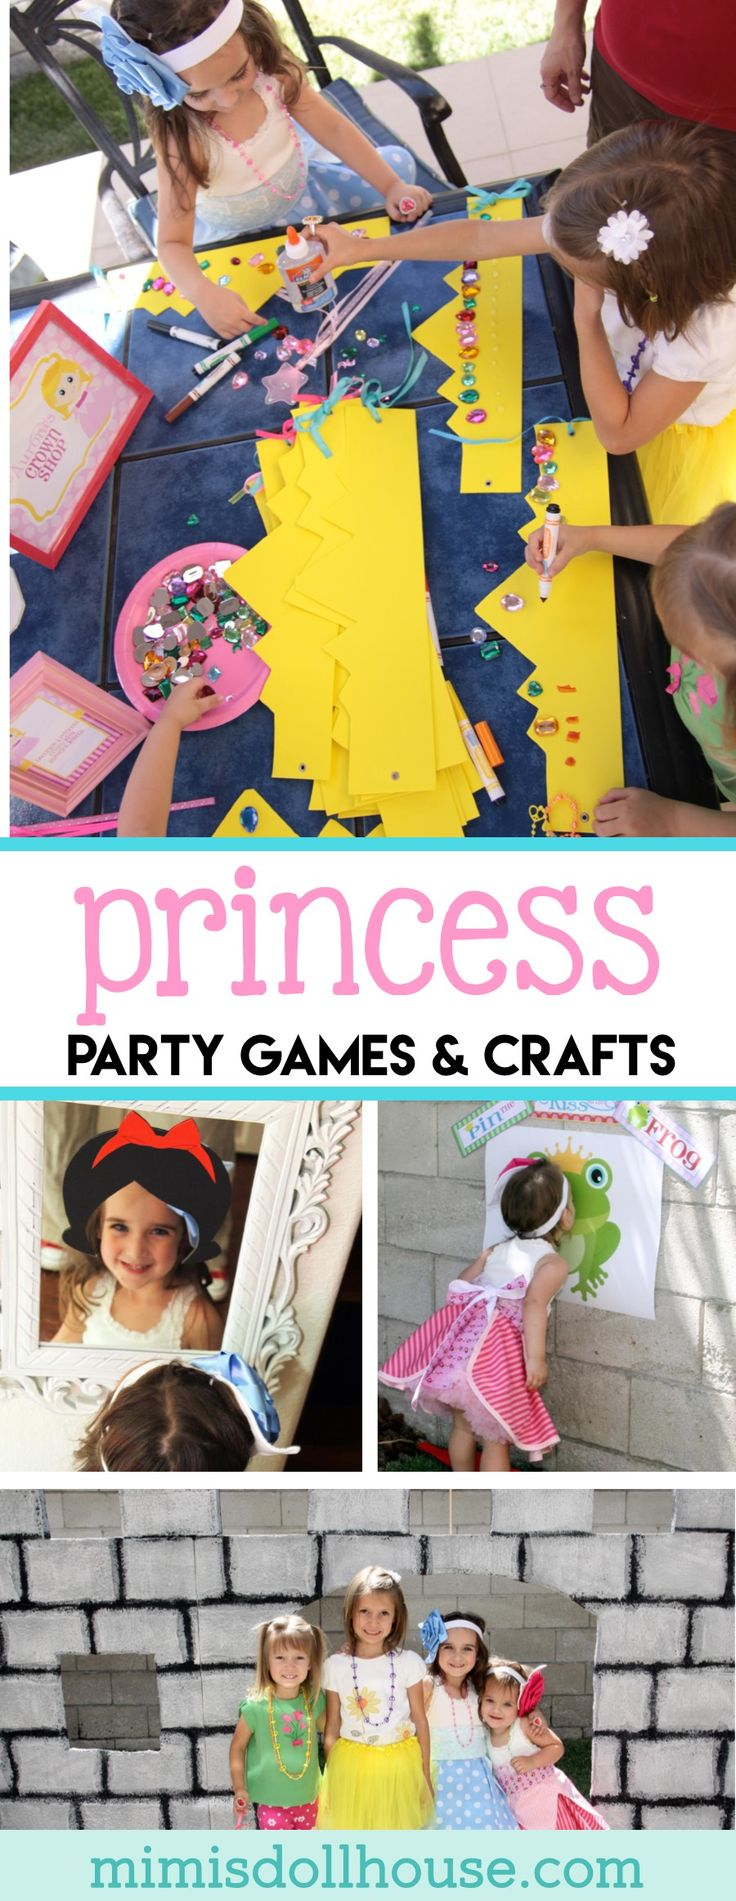 Princess Party: Aubrey's 4th Birthday Storybook Celebration (Part 2). Ready for some more Princess Party Fun?I'm sharing the second part of my daughter's birthday party today (Princess Party Part 1). Be sure to check out theCastle Tutorial,Crown Tutorial, andStorybook Tutorialthat coordinate with this design. Also, check out all of my princess party ideas. via @mimisdollhouse